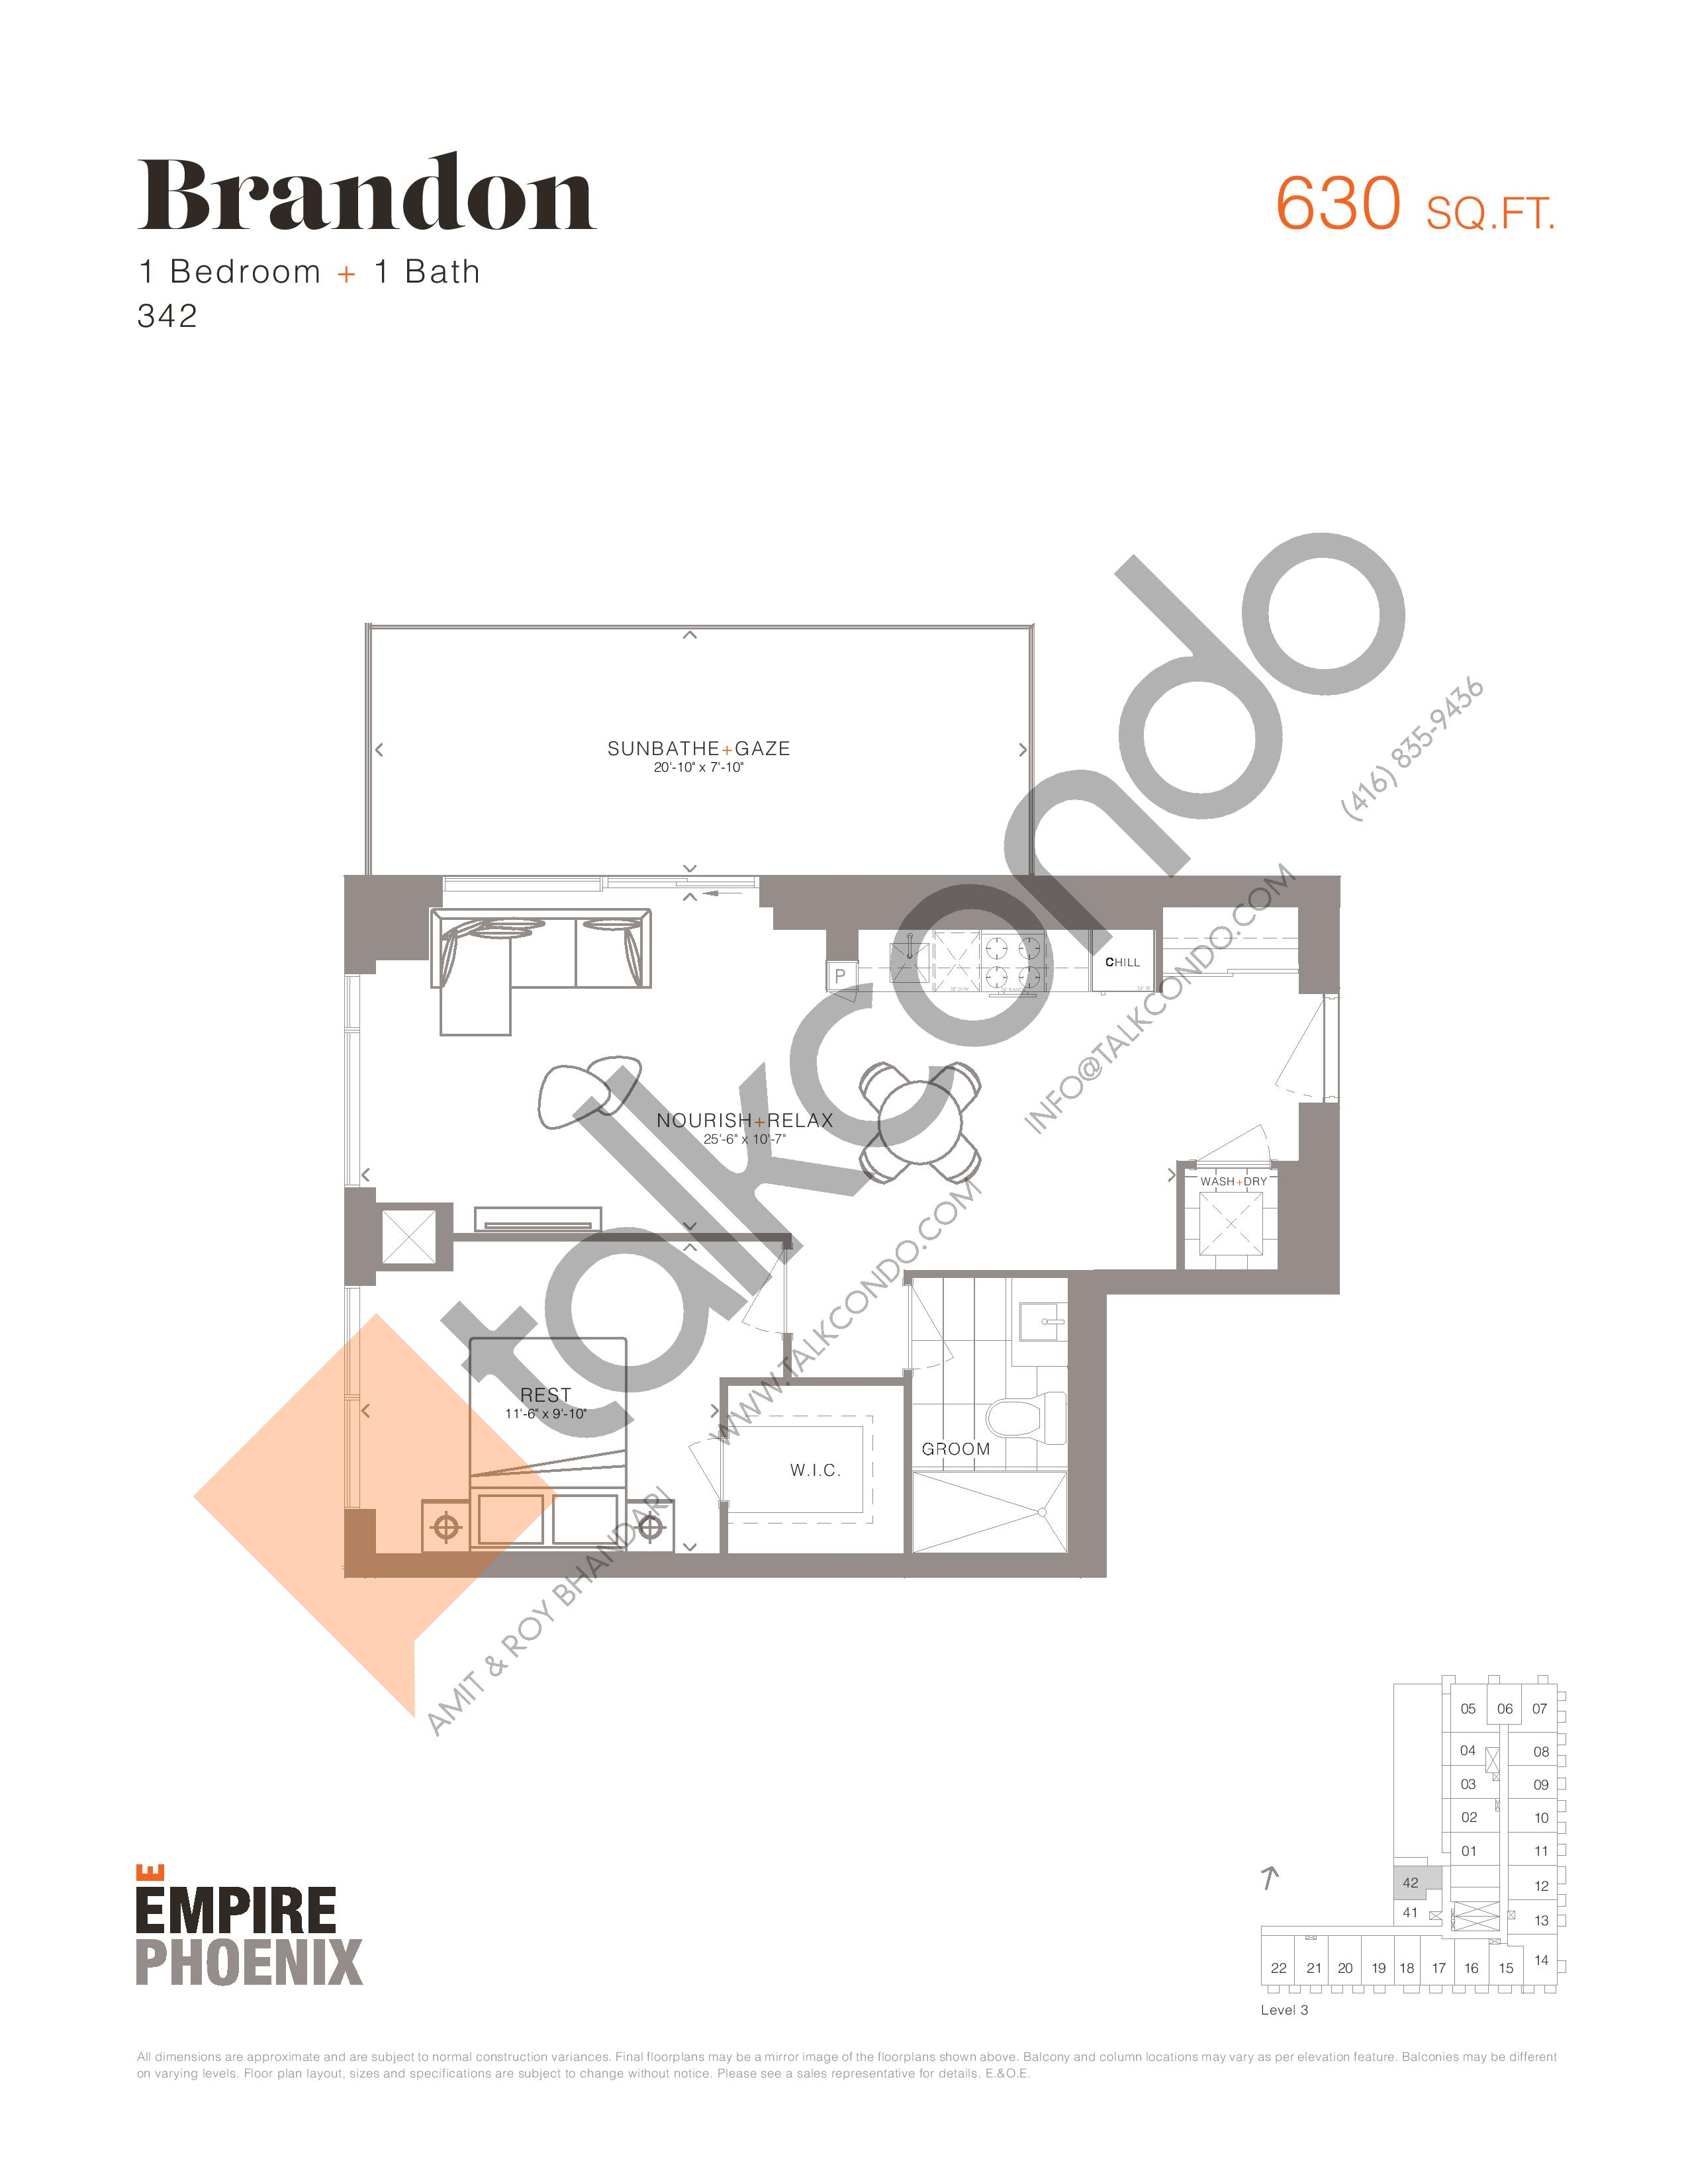 Brandon Floor Plan at Empire Phoenix Condos - 630 sq.ft